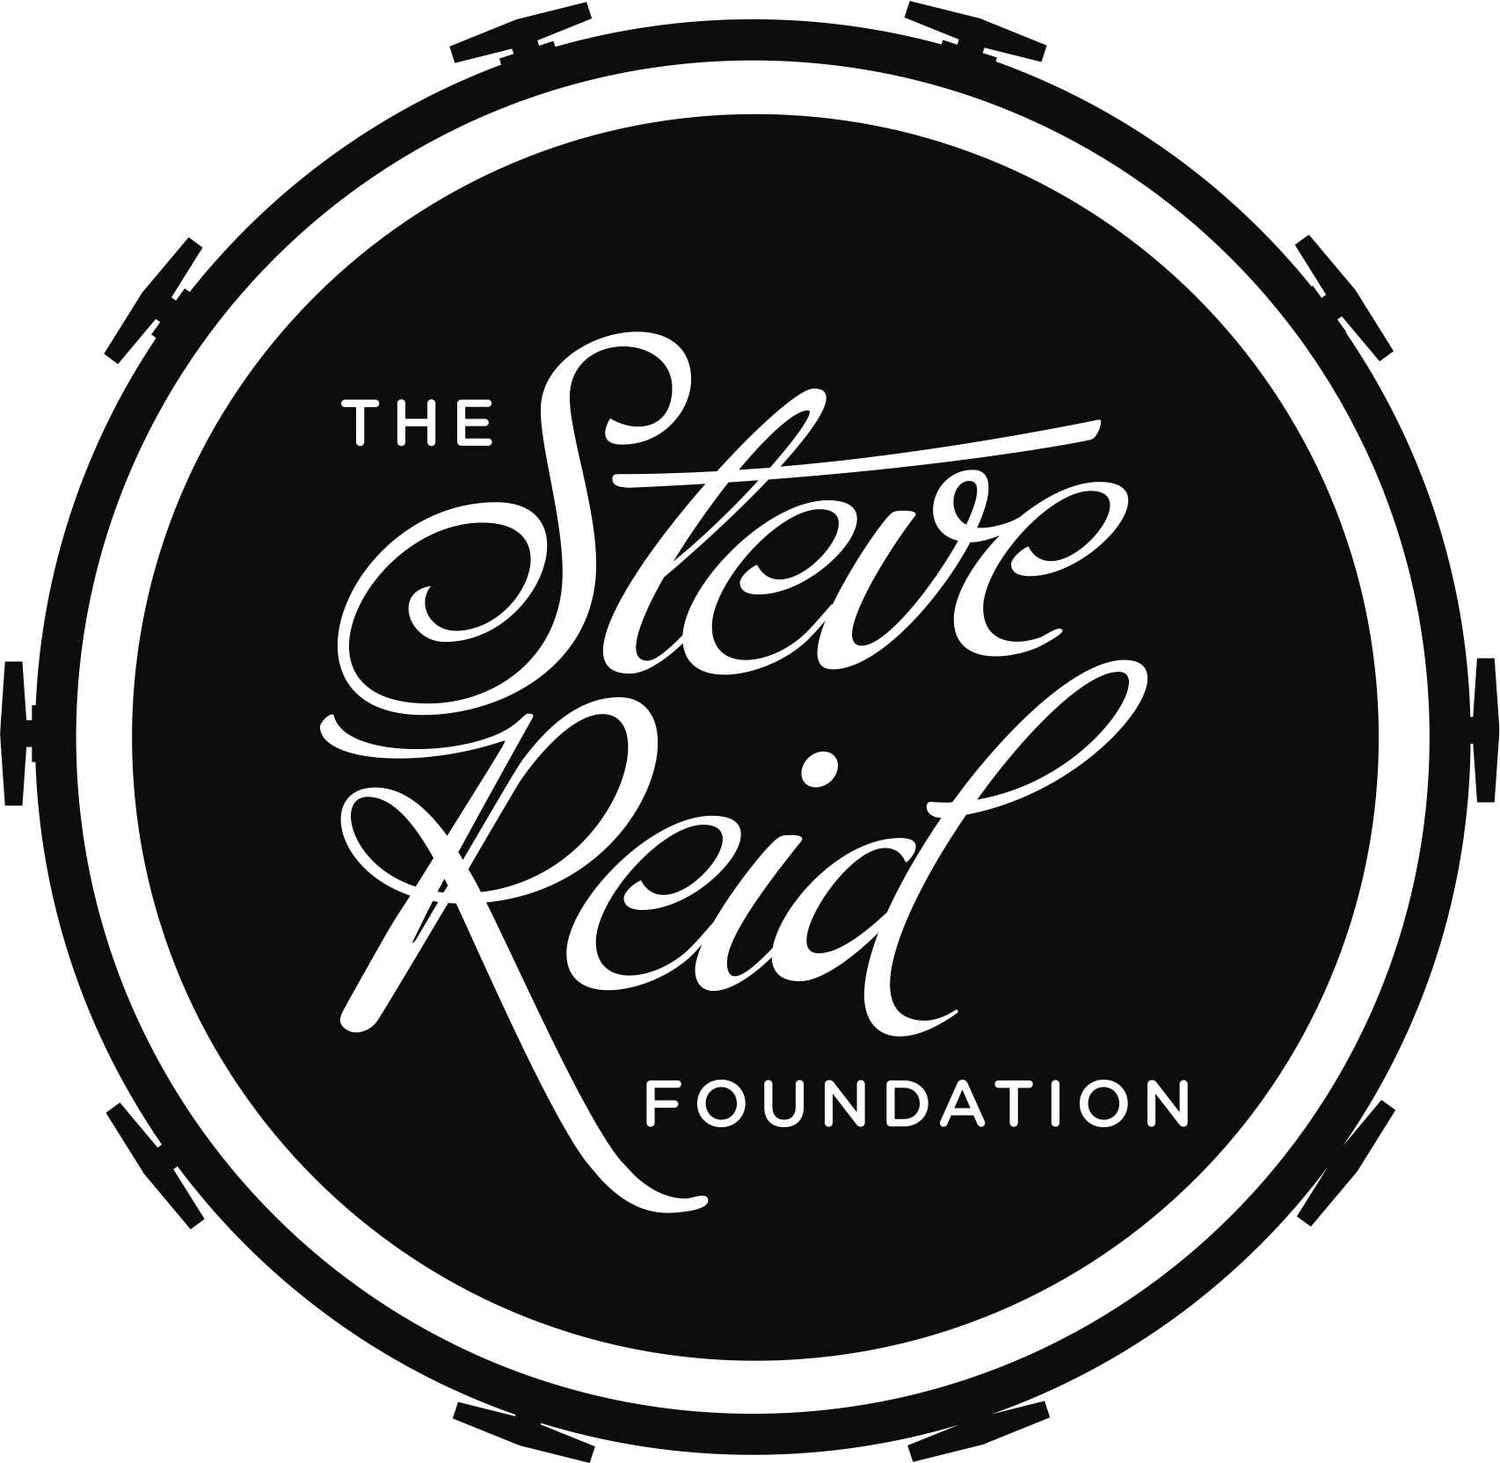 Steve Reid Foundation